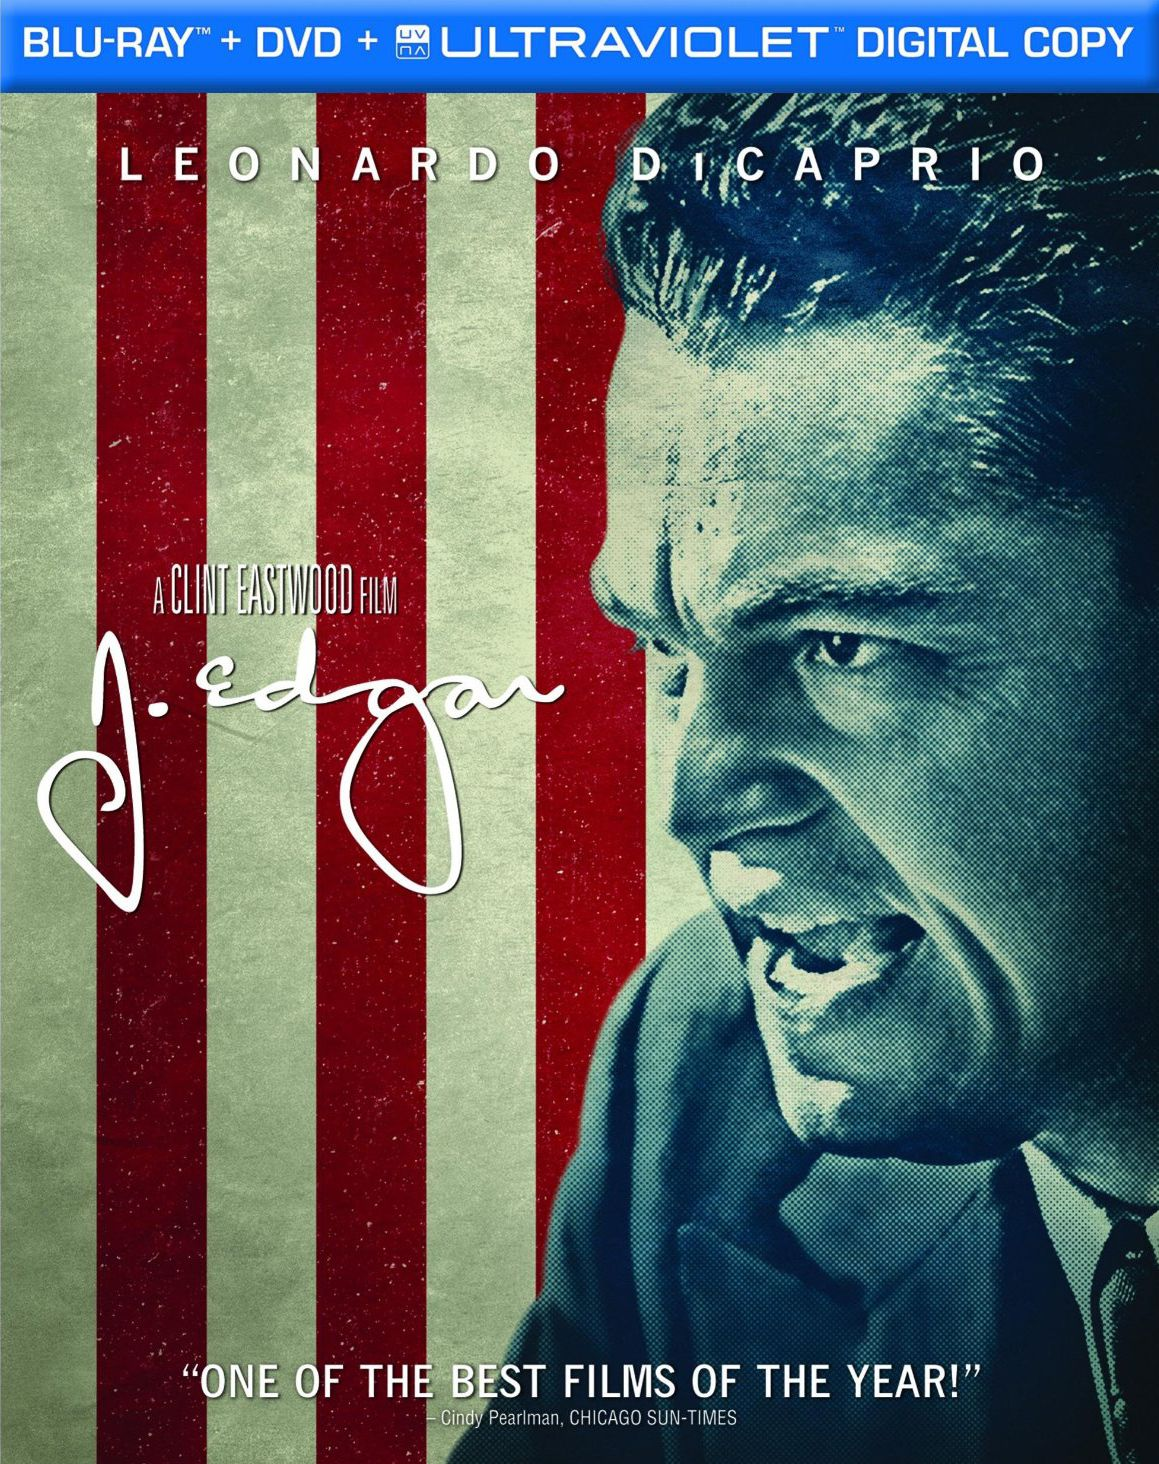 Publicity still for J. Edgar